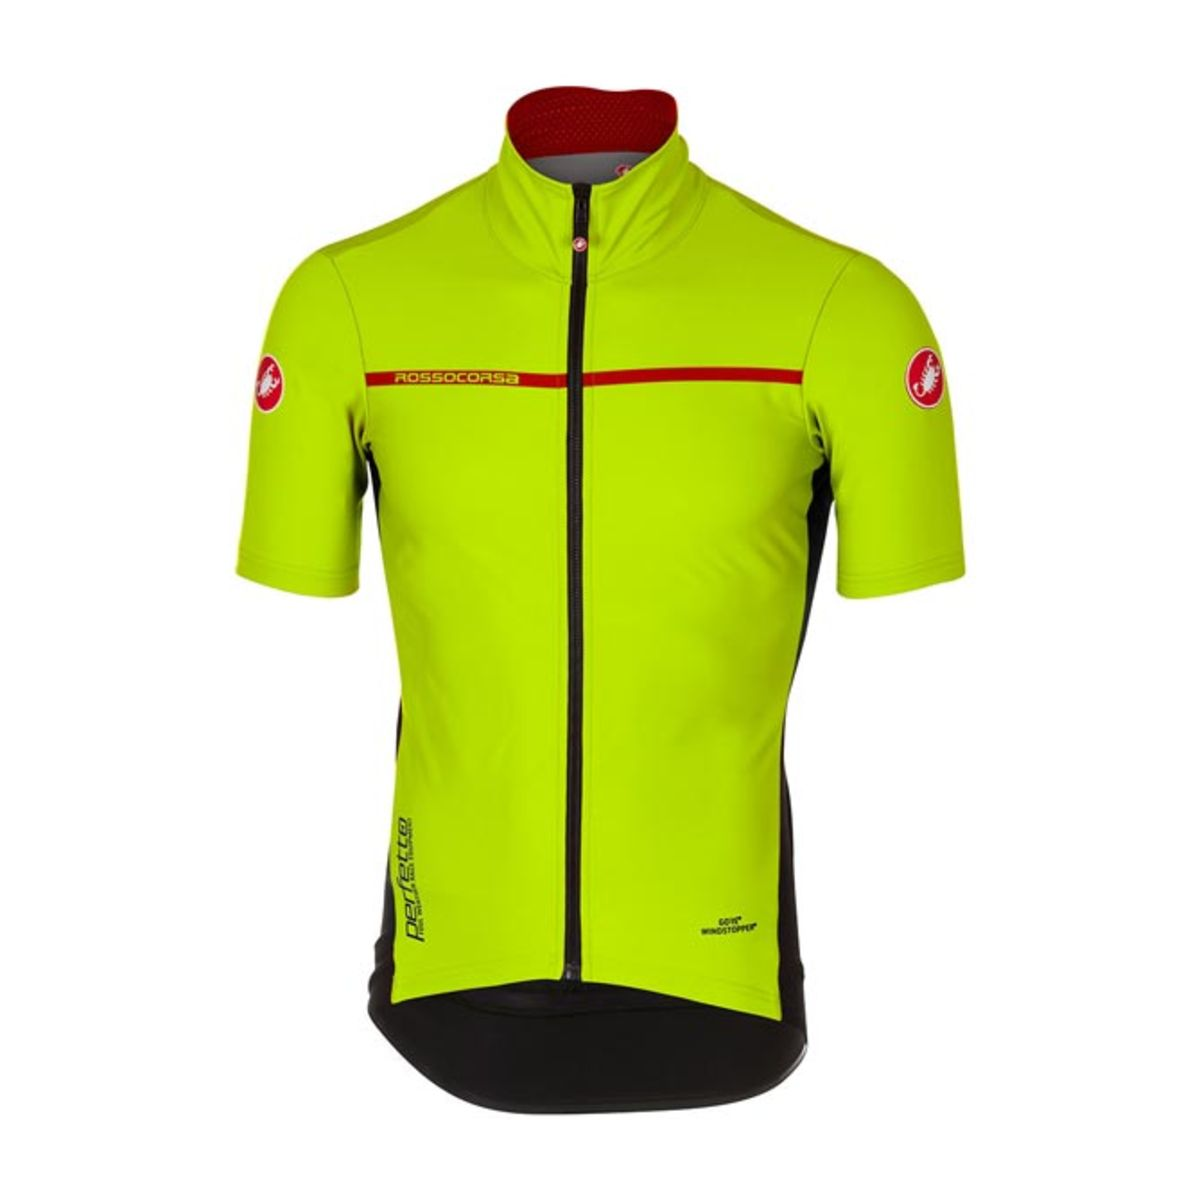 PERFETTO LIGHT 2 GORE WINDSTOPPER jersey